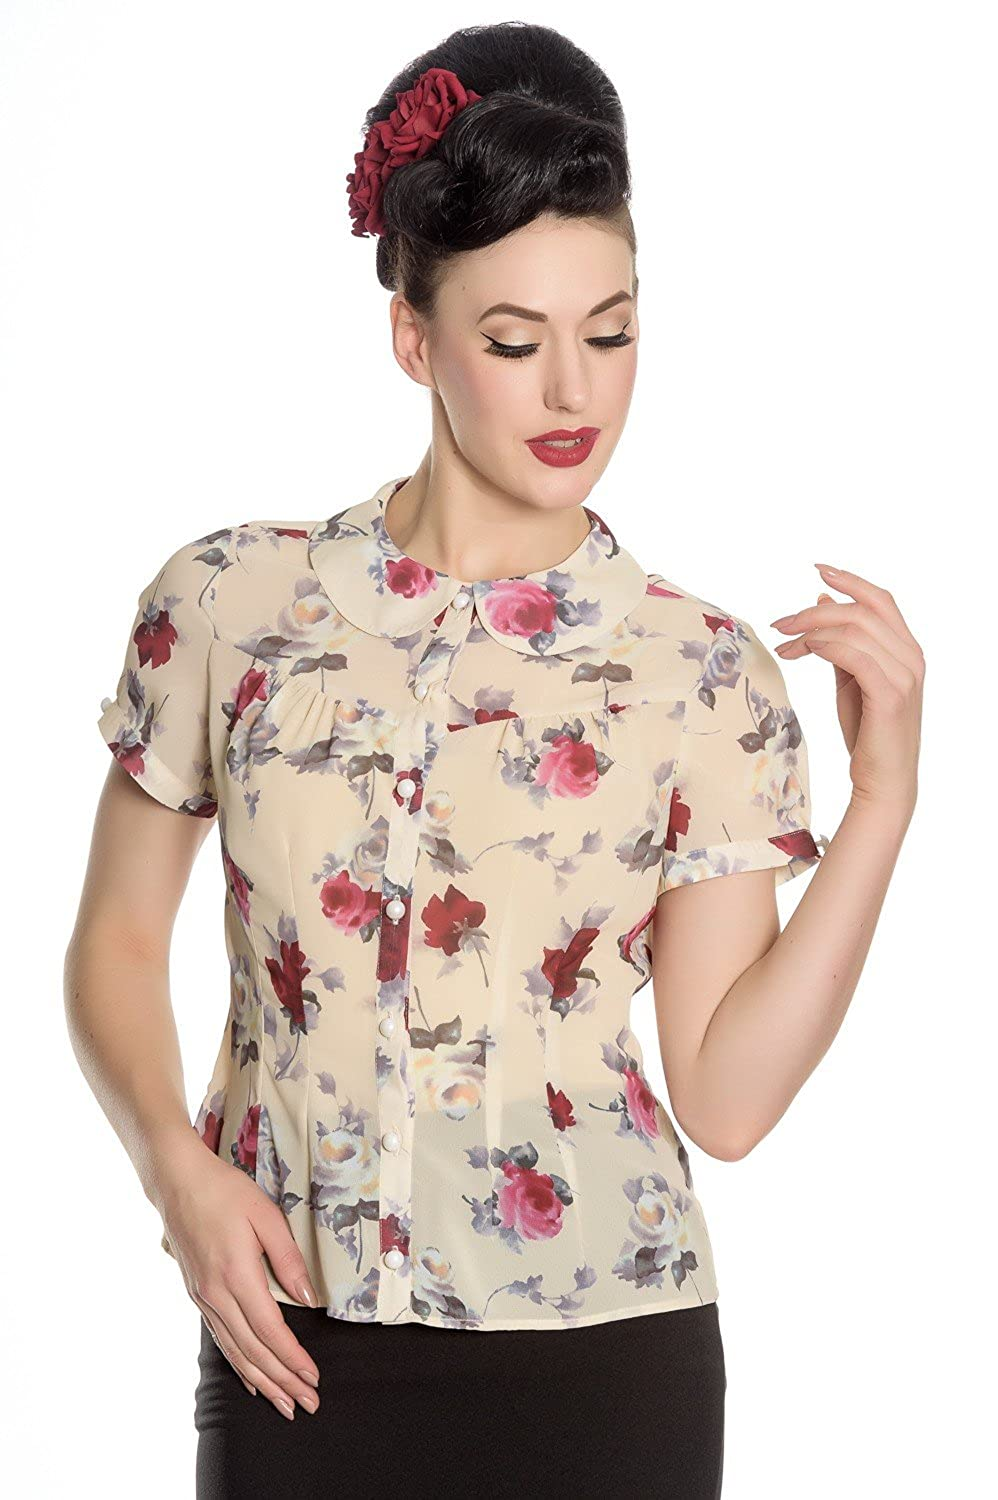 1950s Rockabilly & Pinup Tops, Shirts, Blouses Hell Bunny Flowers Rosemary Vintage Retro 40s 50s Leah Blouse Floral Top Shirt $34.99 AT vintagedancer.com